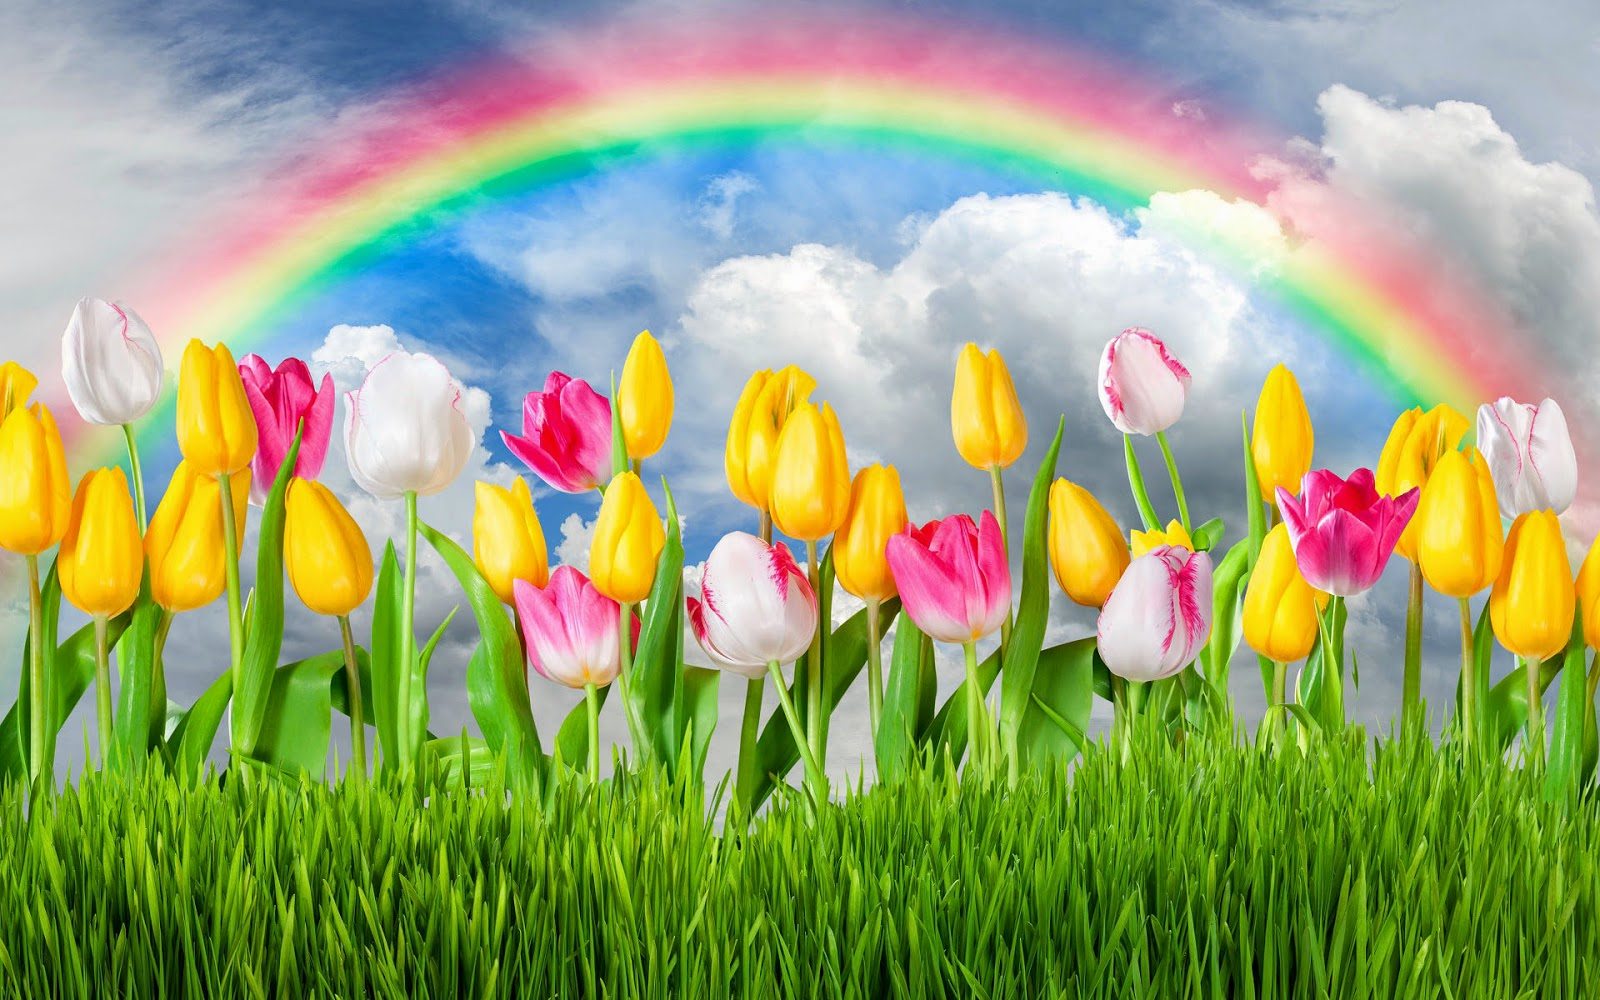 tulpen blumen gras regenbogen hd hintergrundbilder. Black Bedroom Furniture Sets. Home Design Ideas